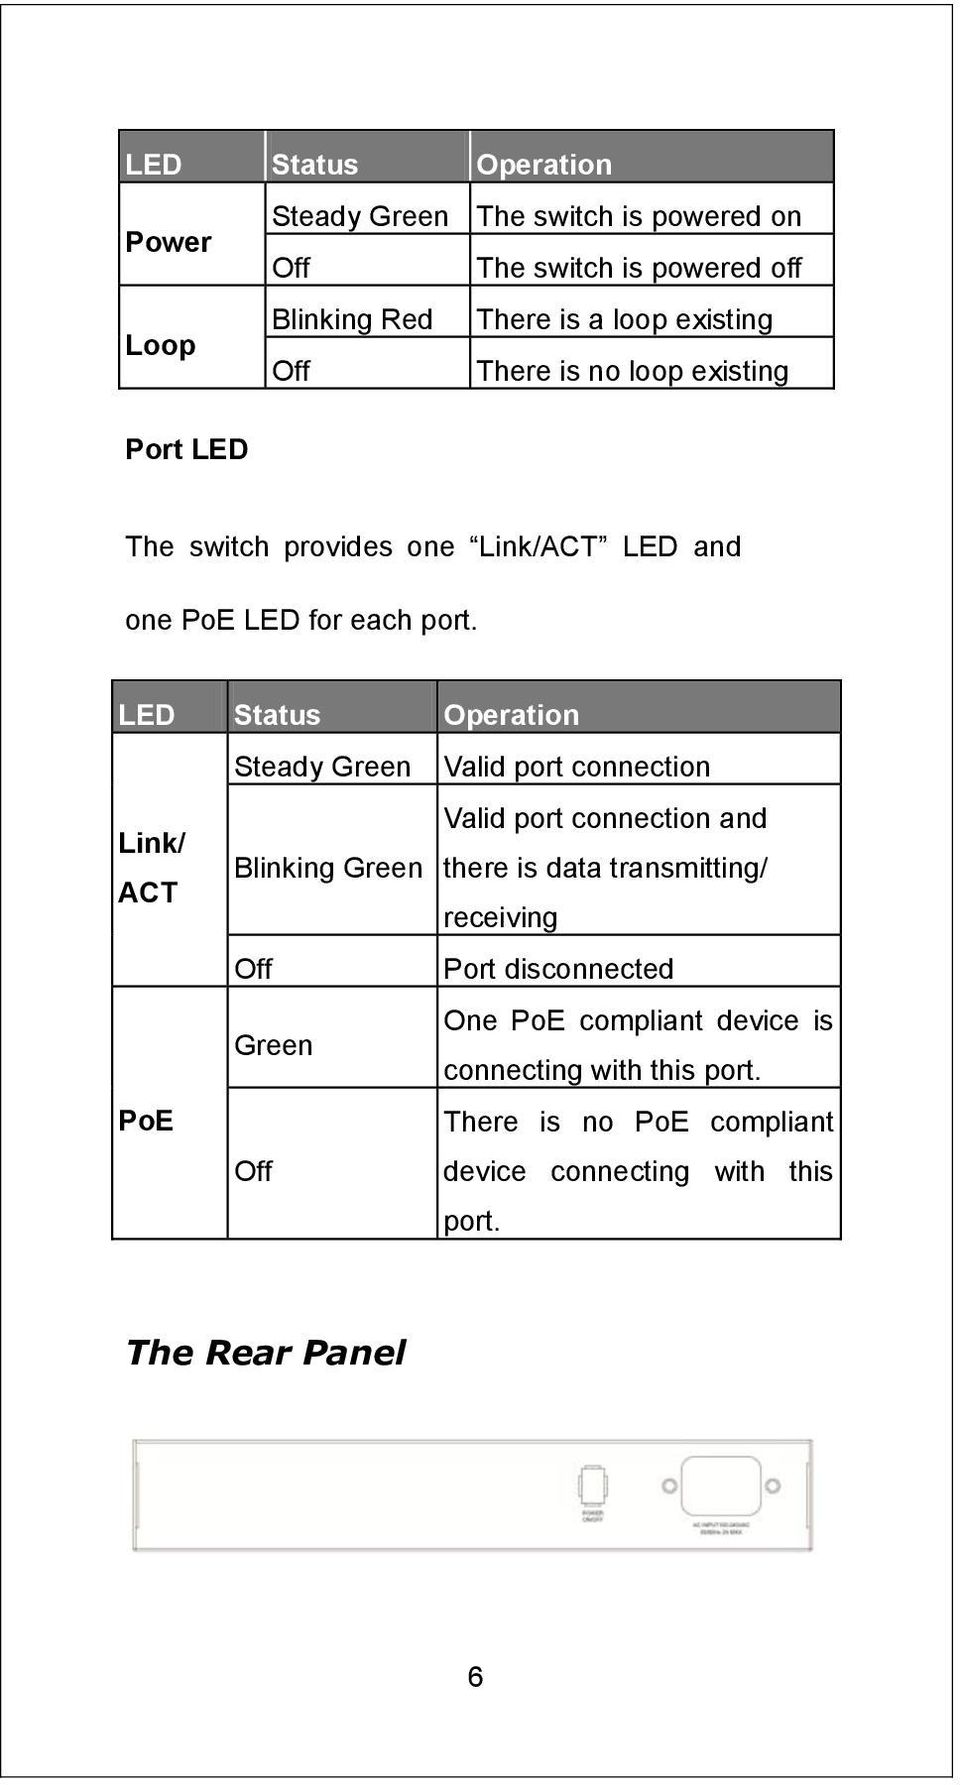 LED Status Operation Steady Green Valid port connection Valid port connection and Link/ ACT Blinking Green there is data transmitting/